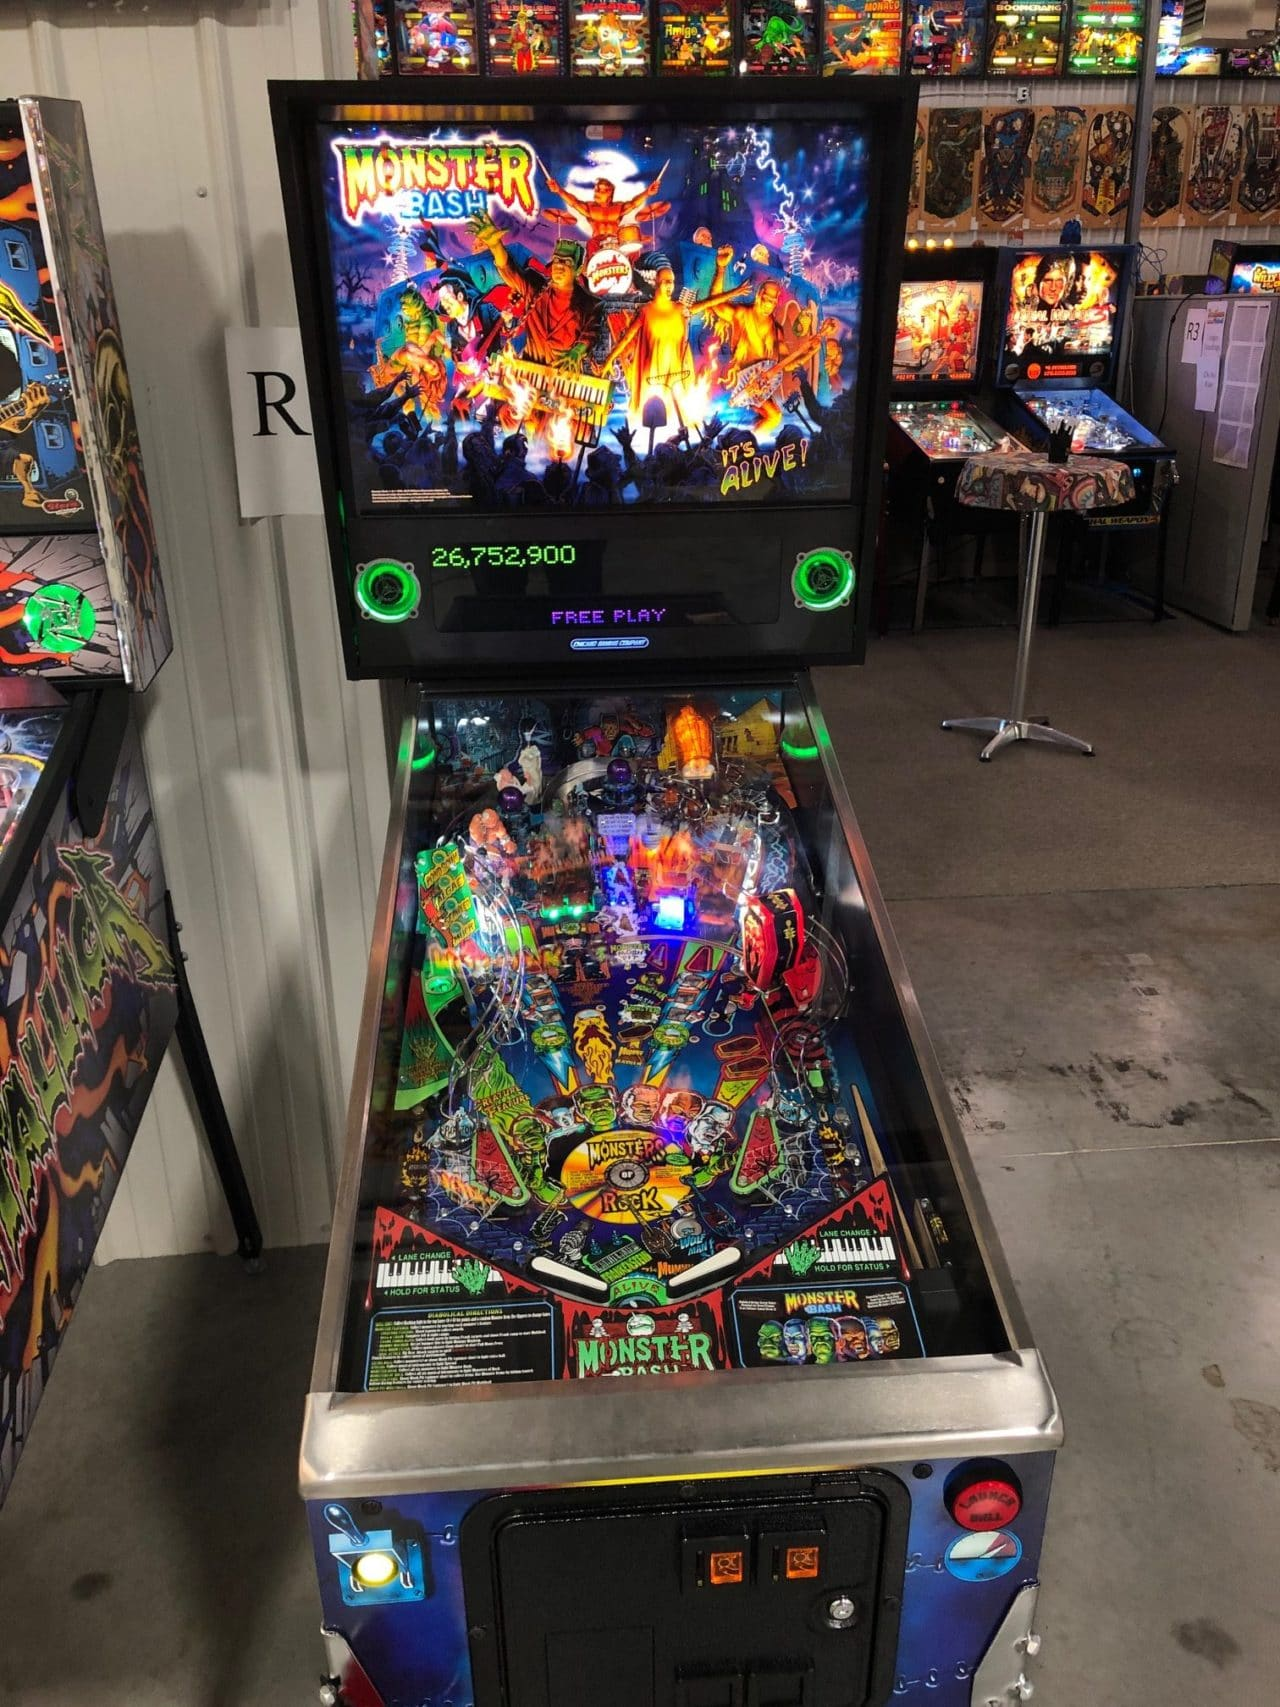 Monster Bash Pinball Machine in Green Bay, WI